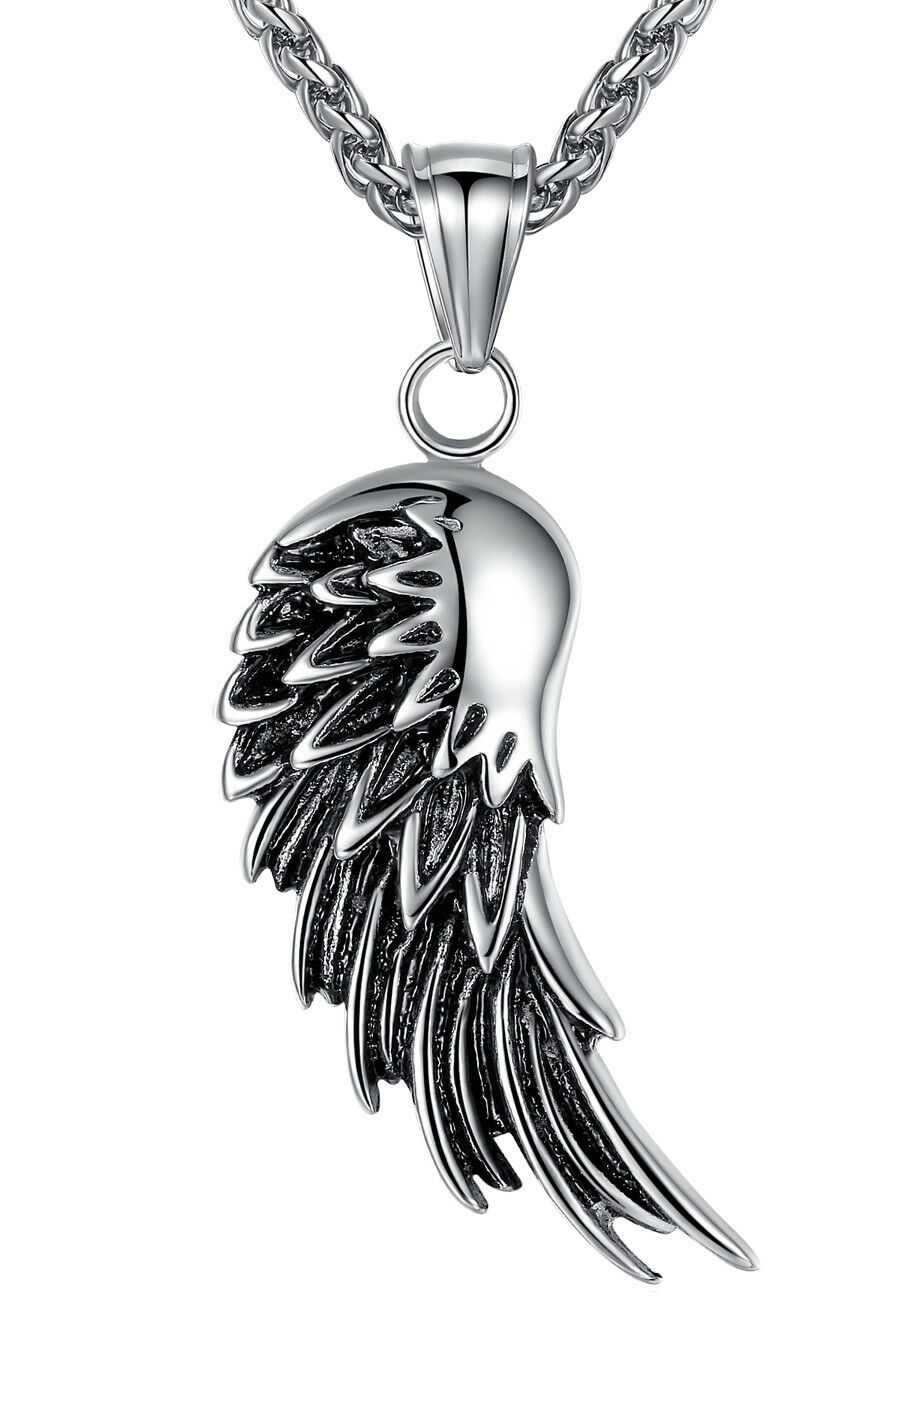 Stainless Steel Angel Wing Men's Women's Pendant Necklace Chains, Necklaces & Pendants